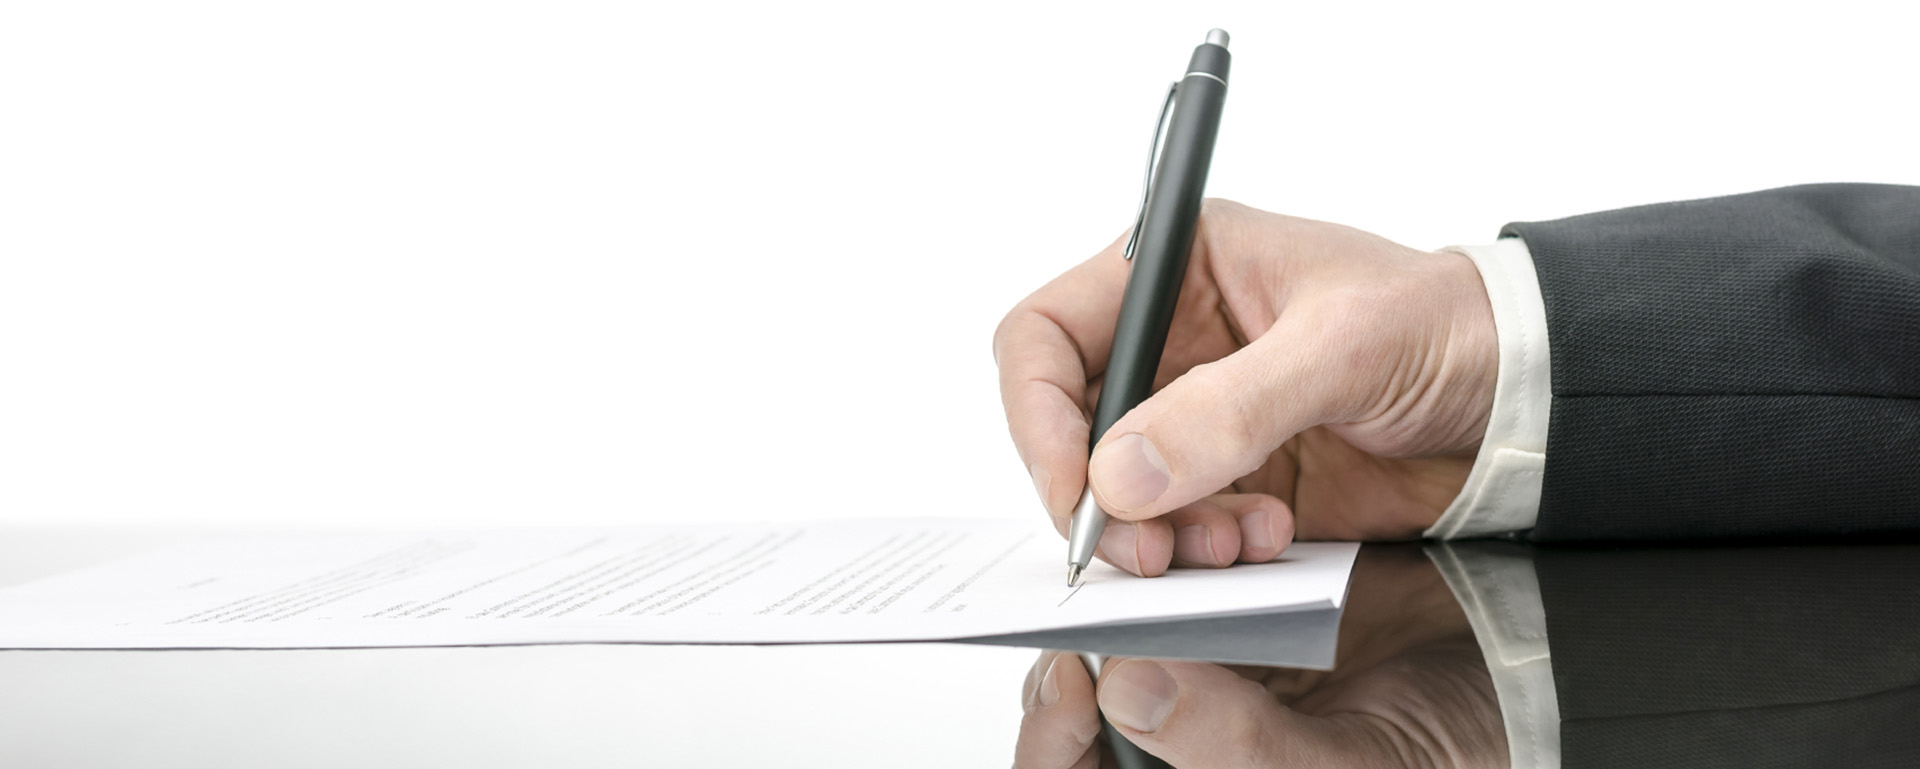 Signing a contract on a black table. With copy space and reflection.